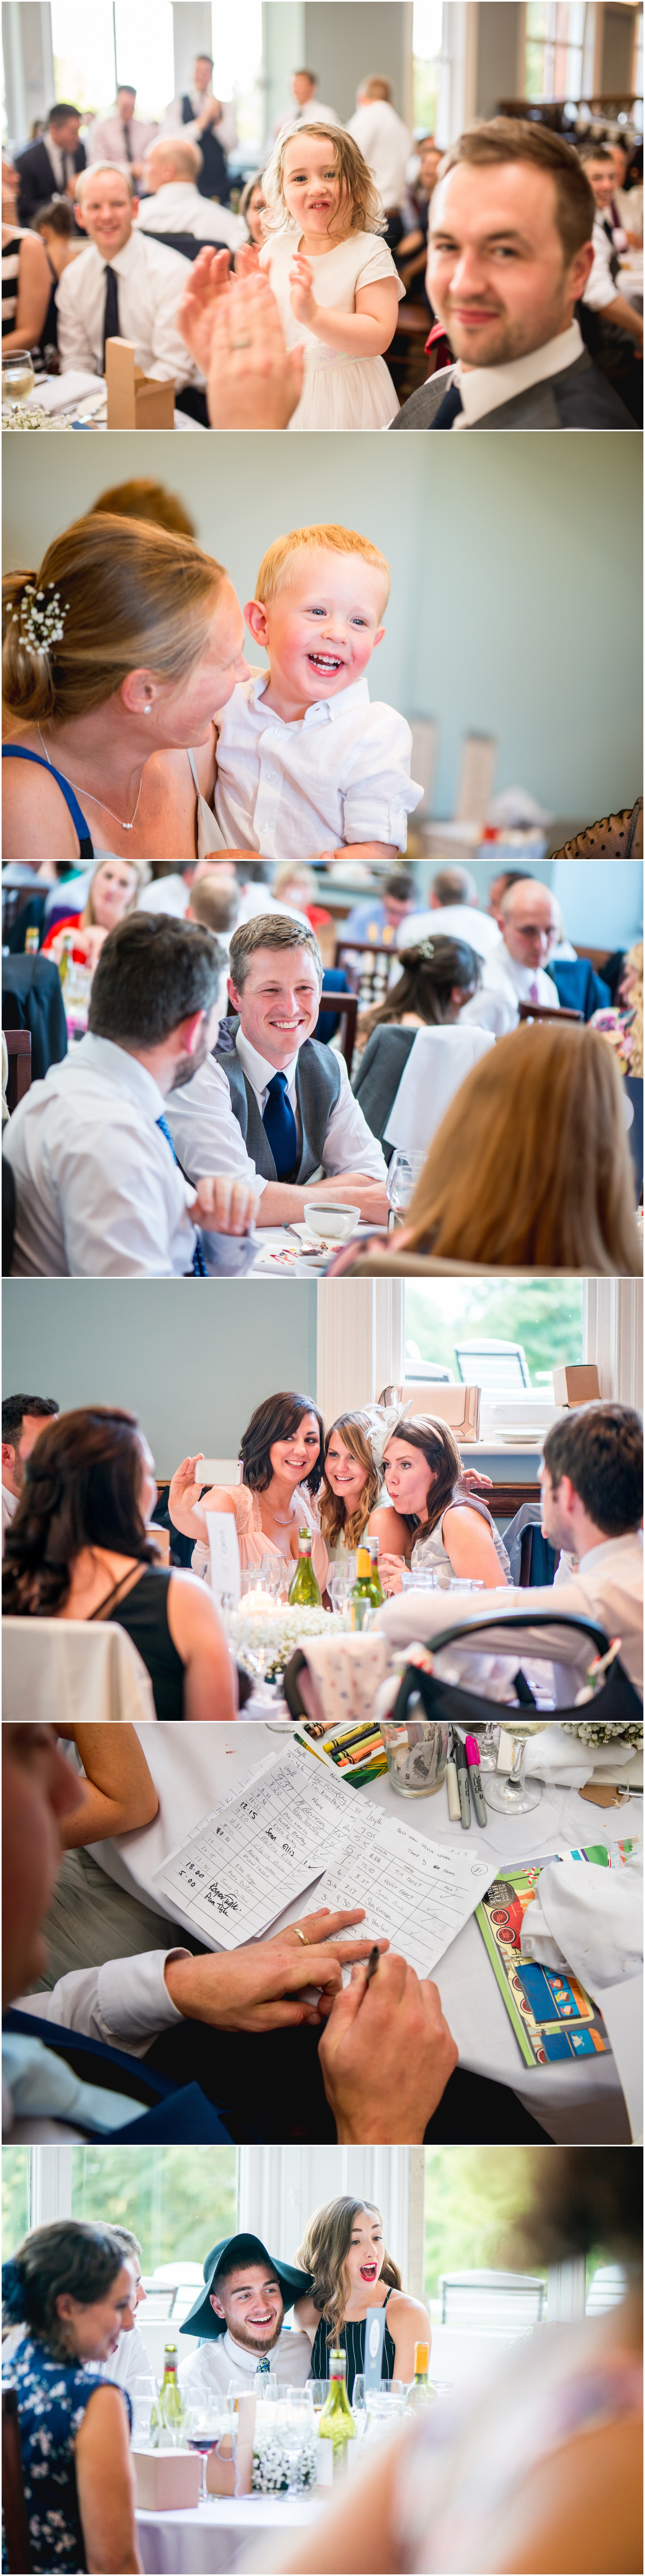 Beautiful blue themed wedding at Pendrell Hall Wedding Venue with photography by Lisa Carpenter Photography, West Midlands, Birmingham and Sutton Coldfield based photographer